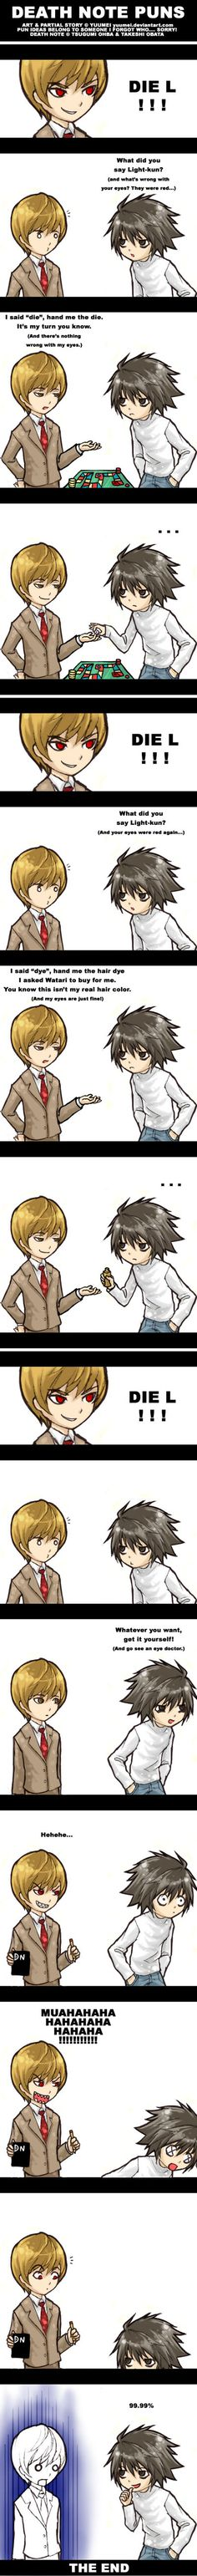 DEATH NOTE PUNS by yuumei.deviantart.com on @deviantART